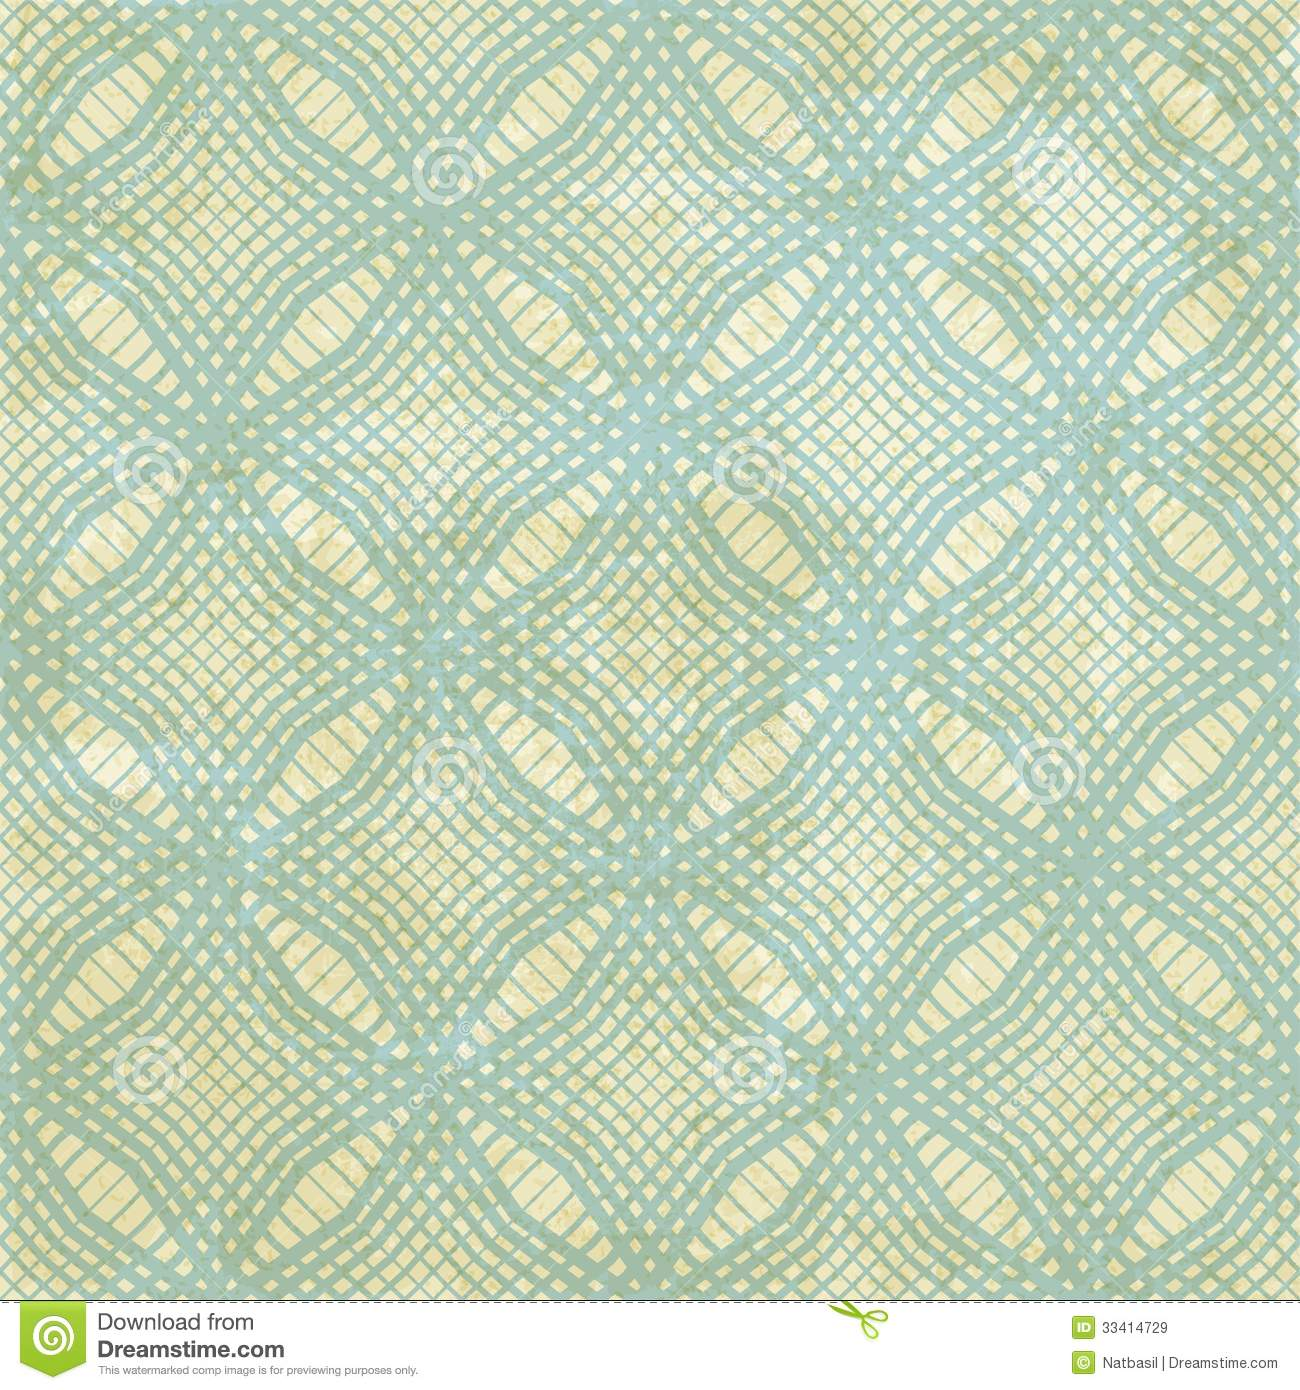 Royalty Free Stock Images: Vintage background with ...